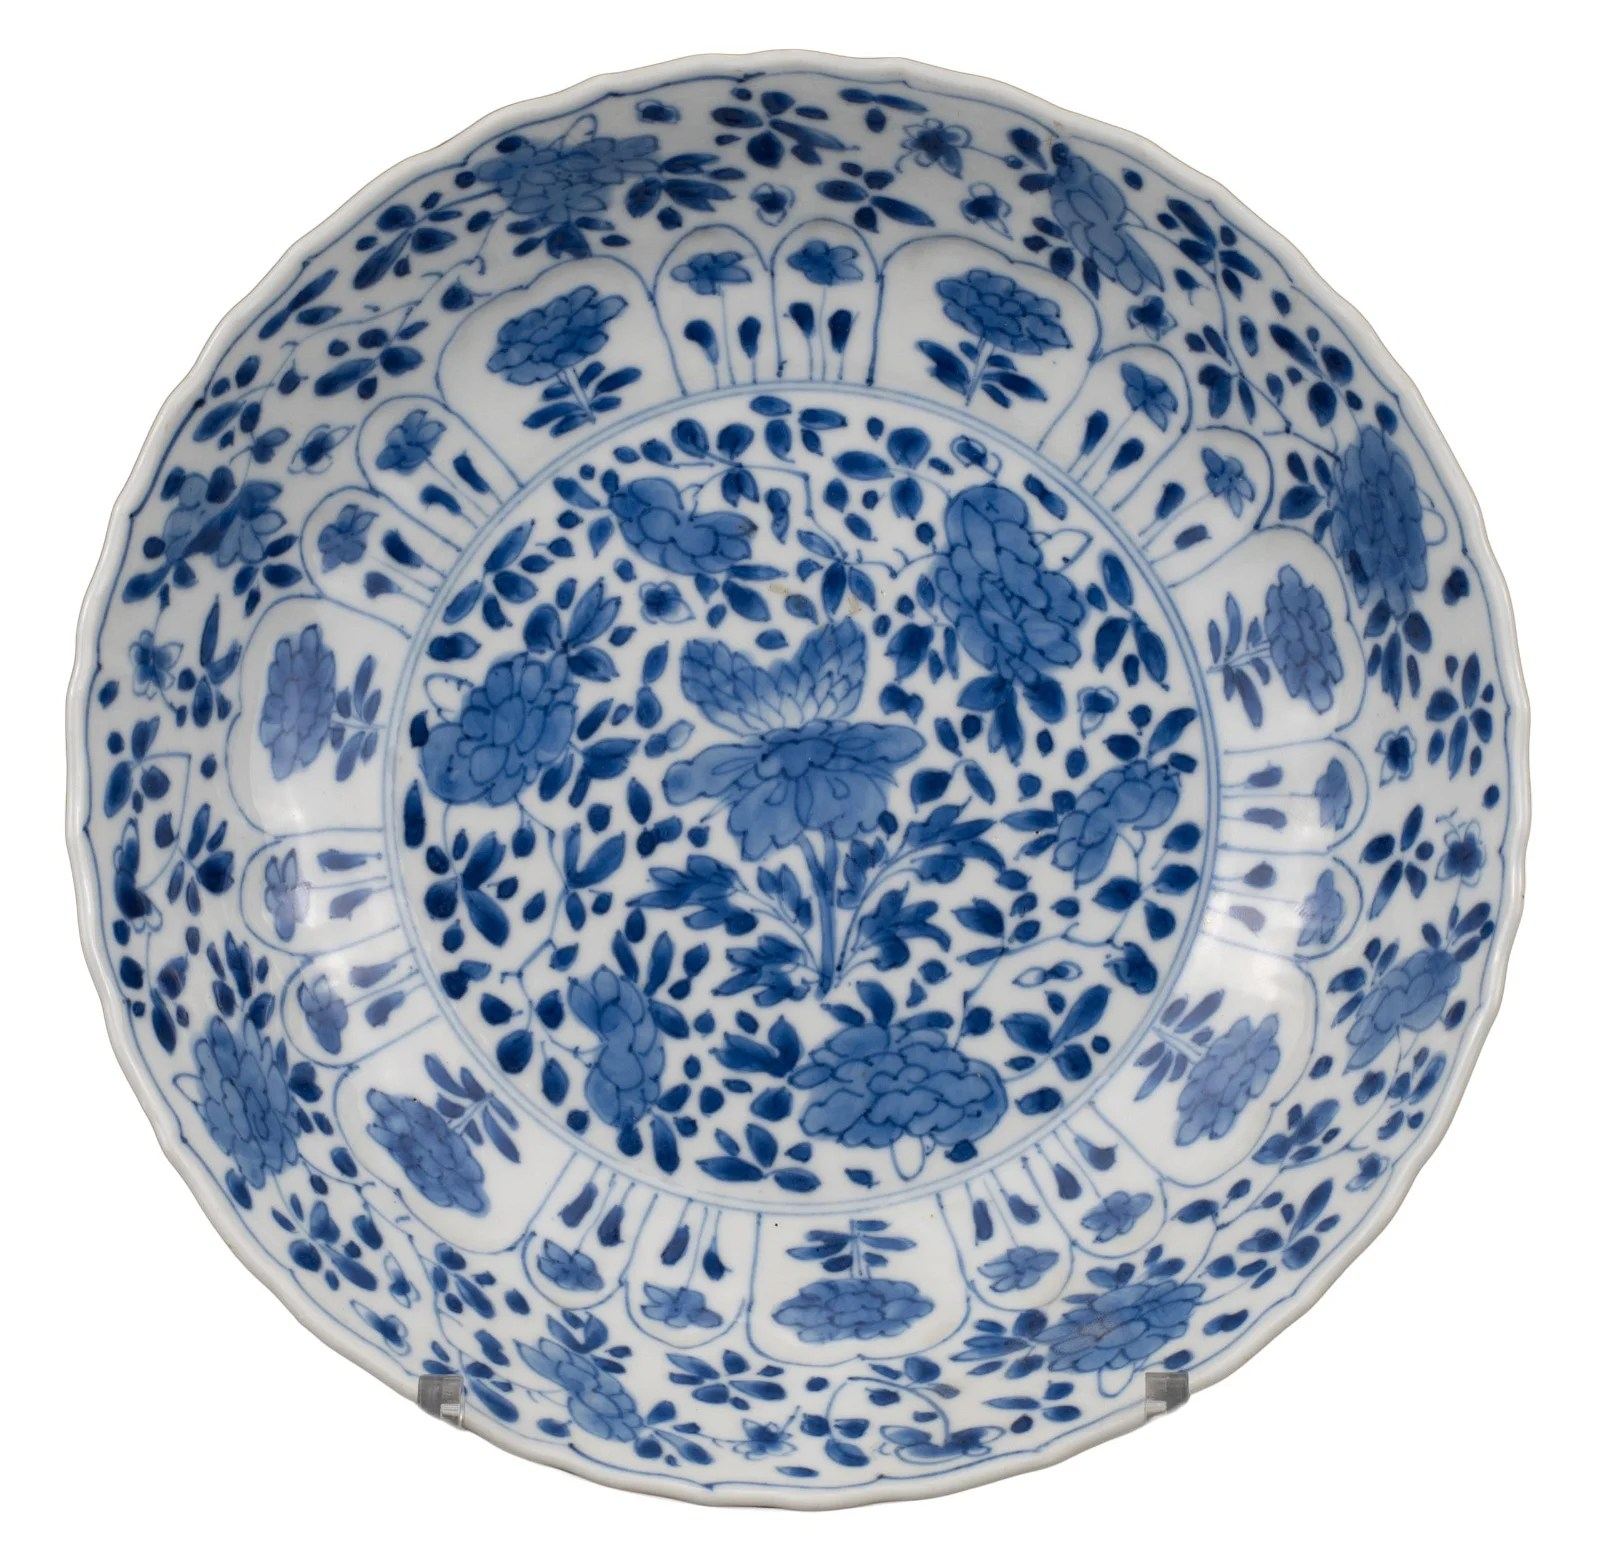 FINE CHINESE BLUE AND WHITE LOBED PORCELAIN DISH,